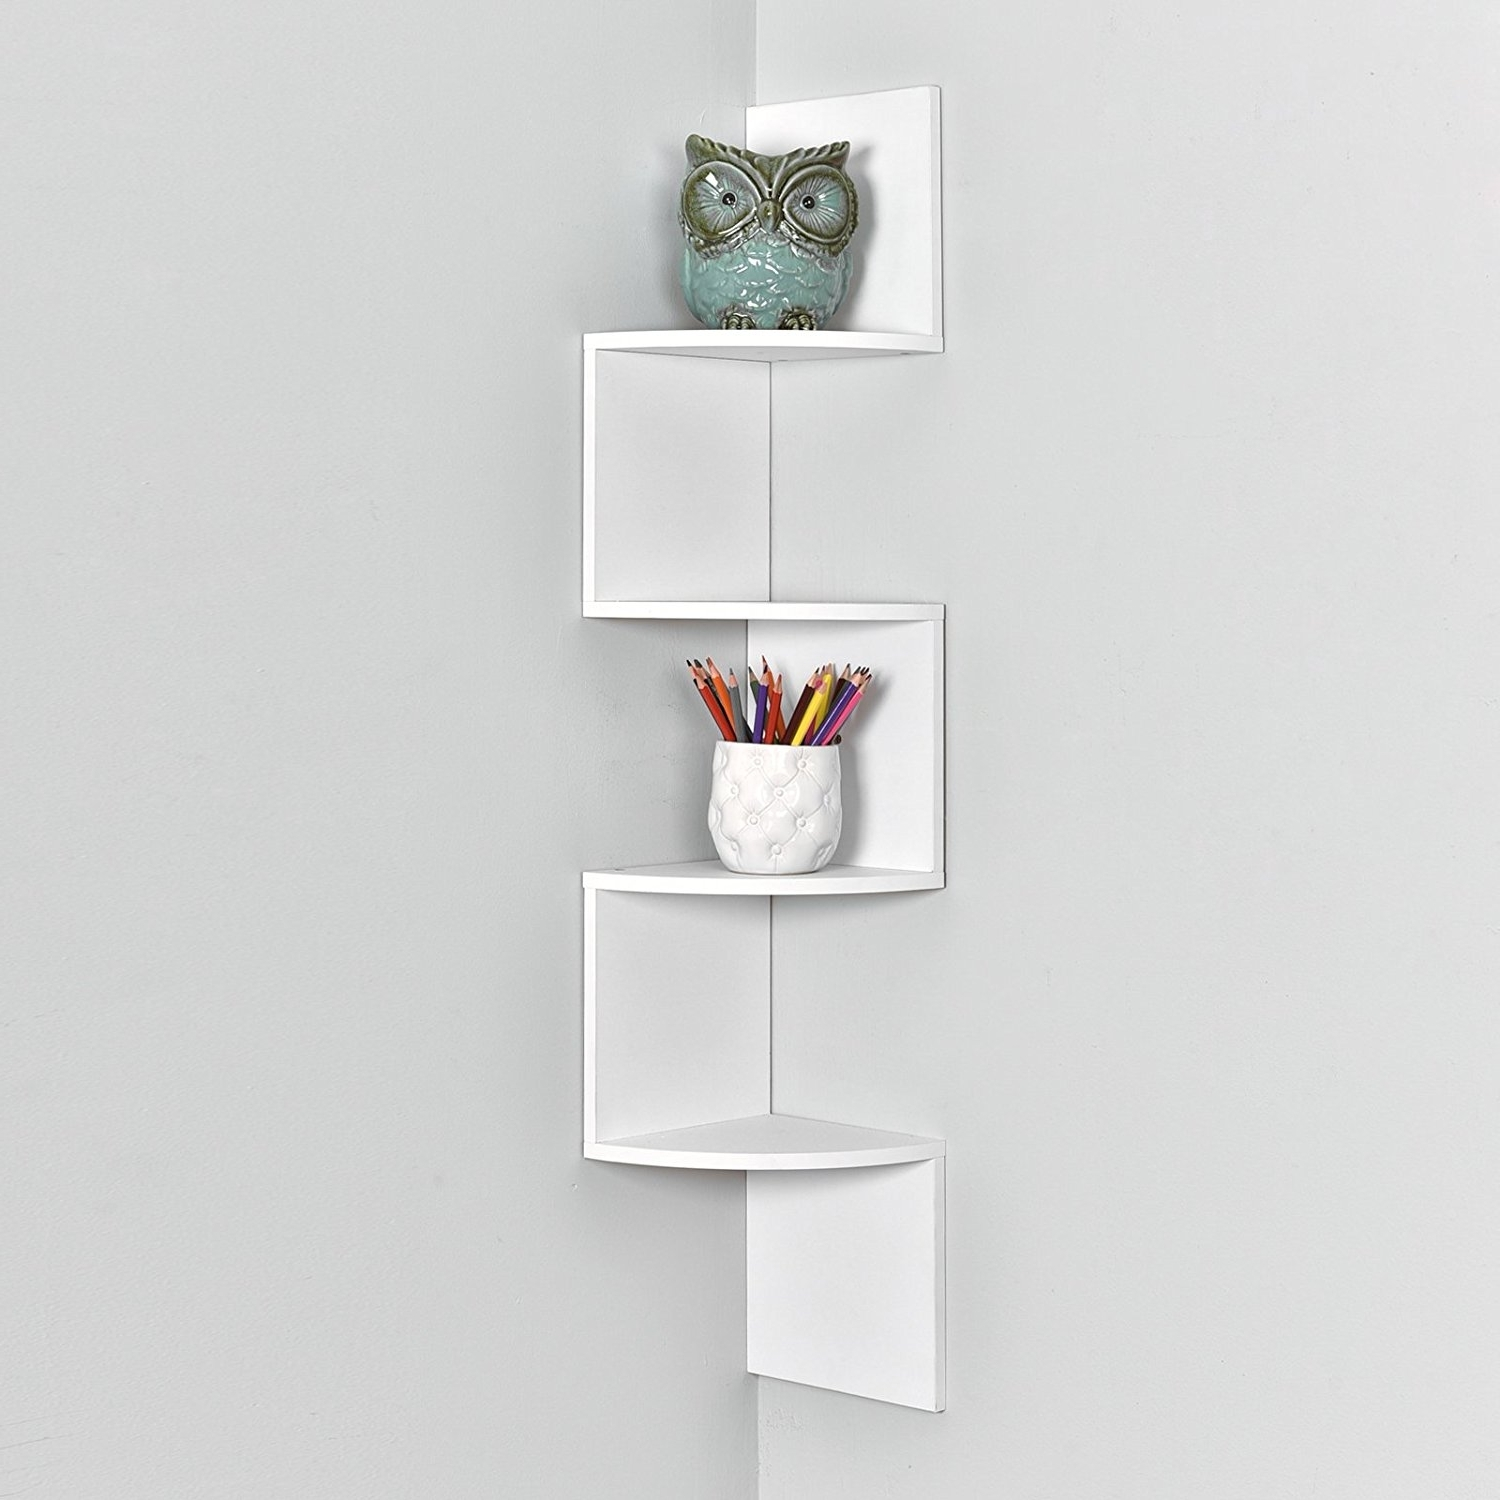 Most Current White Wall Shelves With Regard To Amazon: Welland Zig Zag 4 Tiers Corner Wall Shelf, White: Home (View 11 of 15)